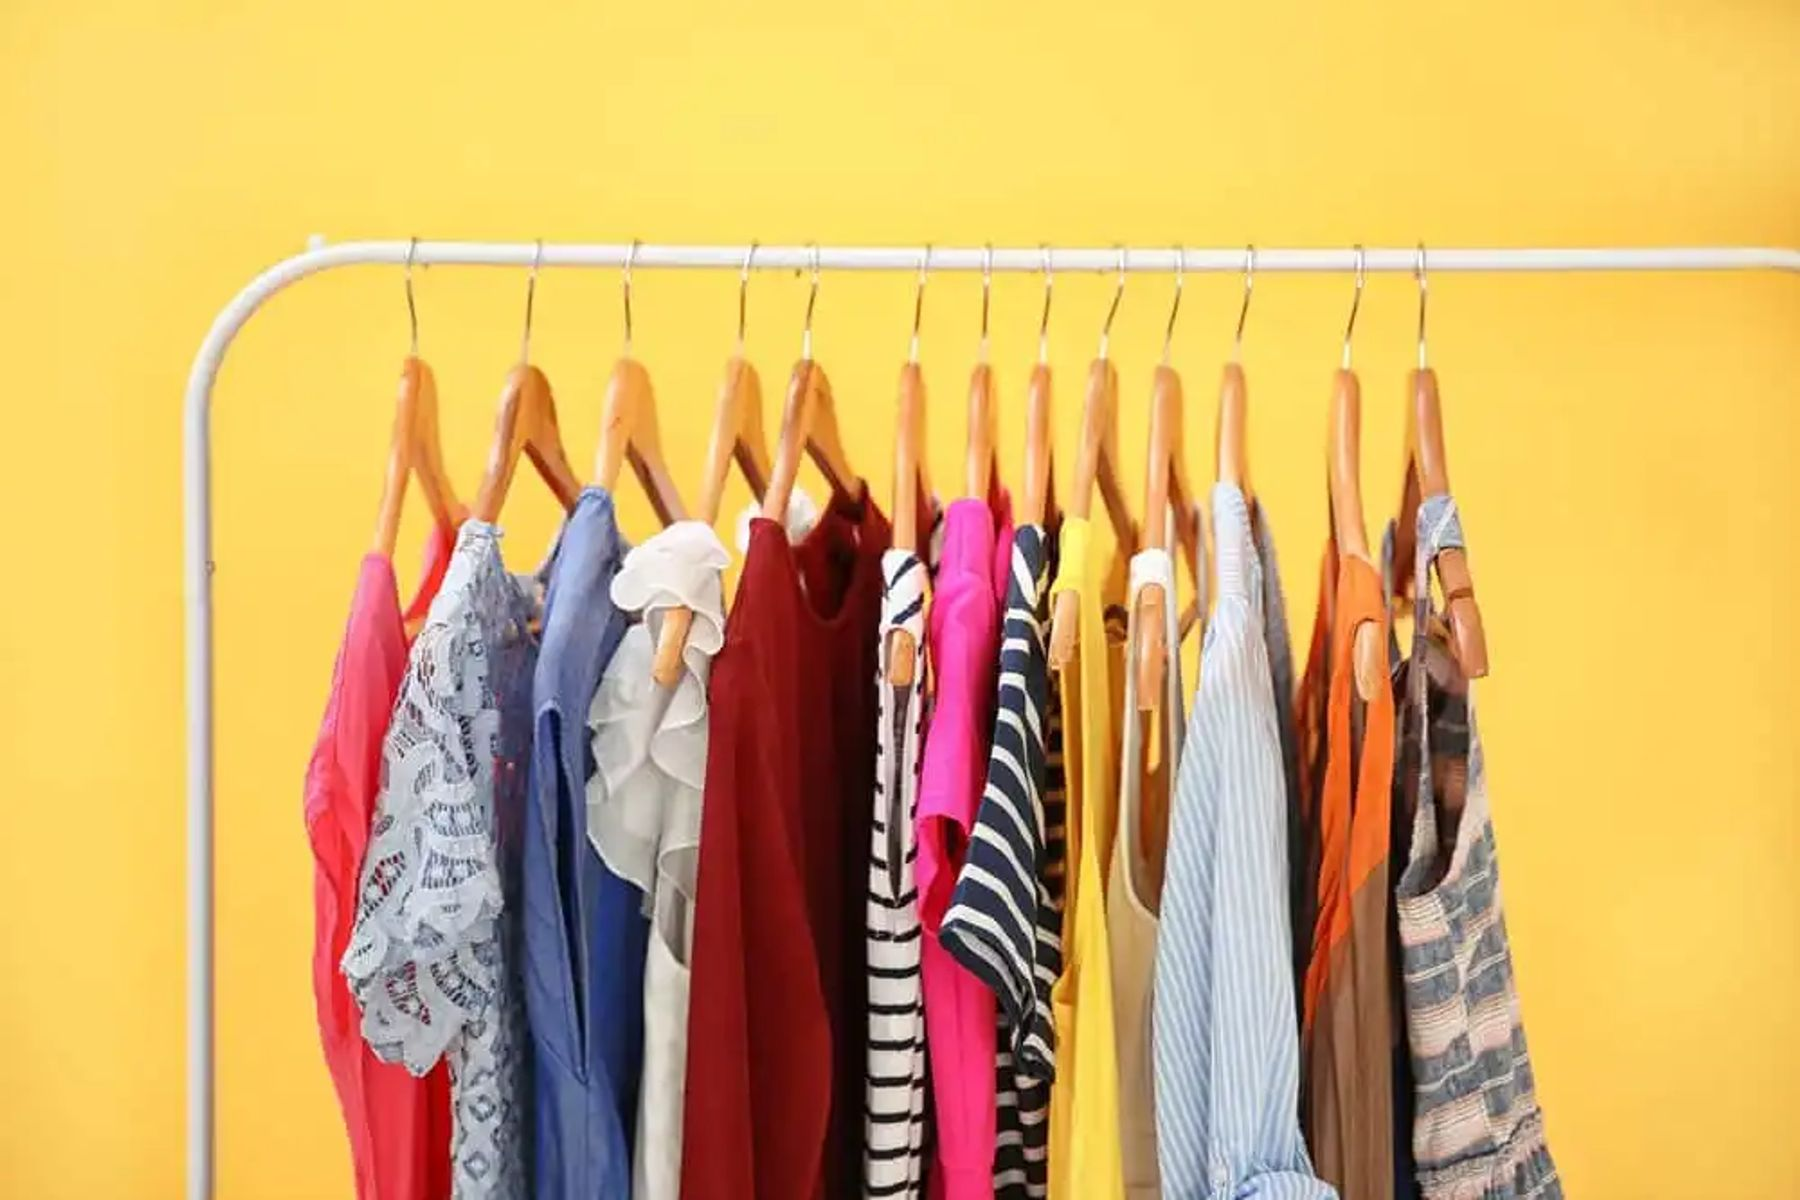 A rack of women's tops hanging from wooden hangers in front of a yellow background